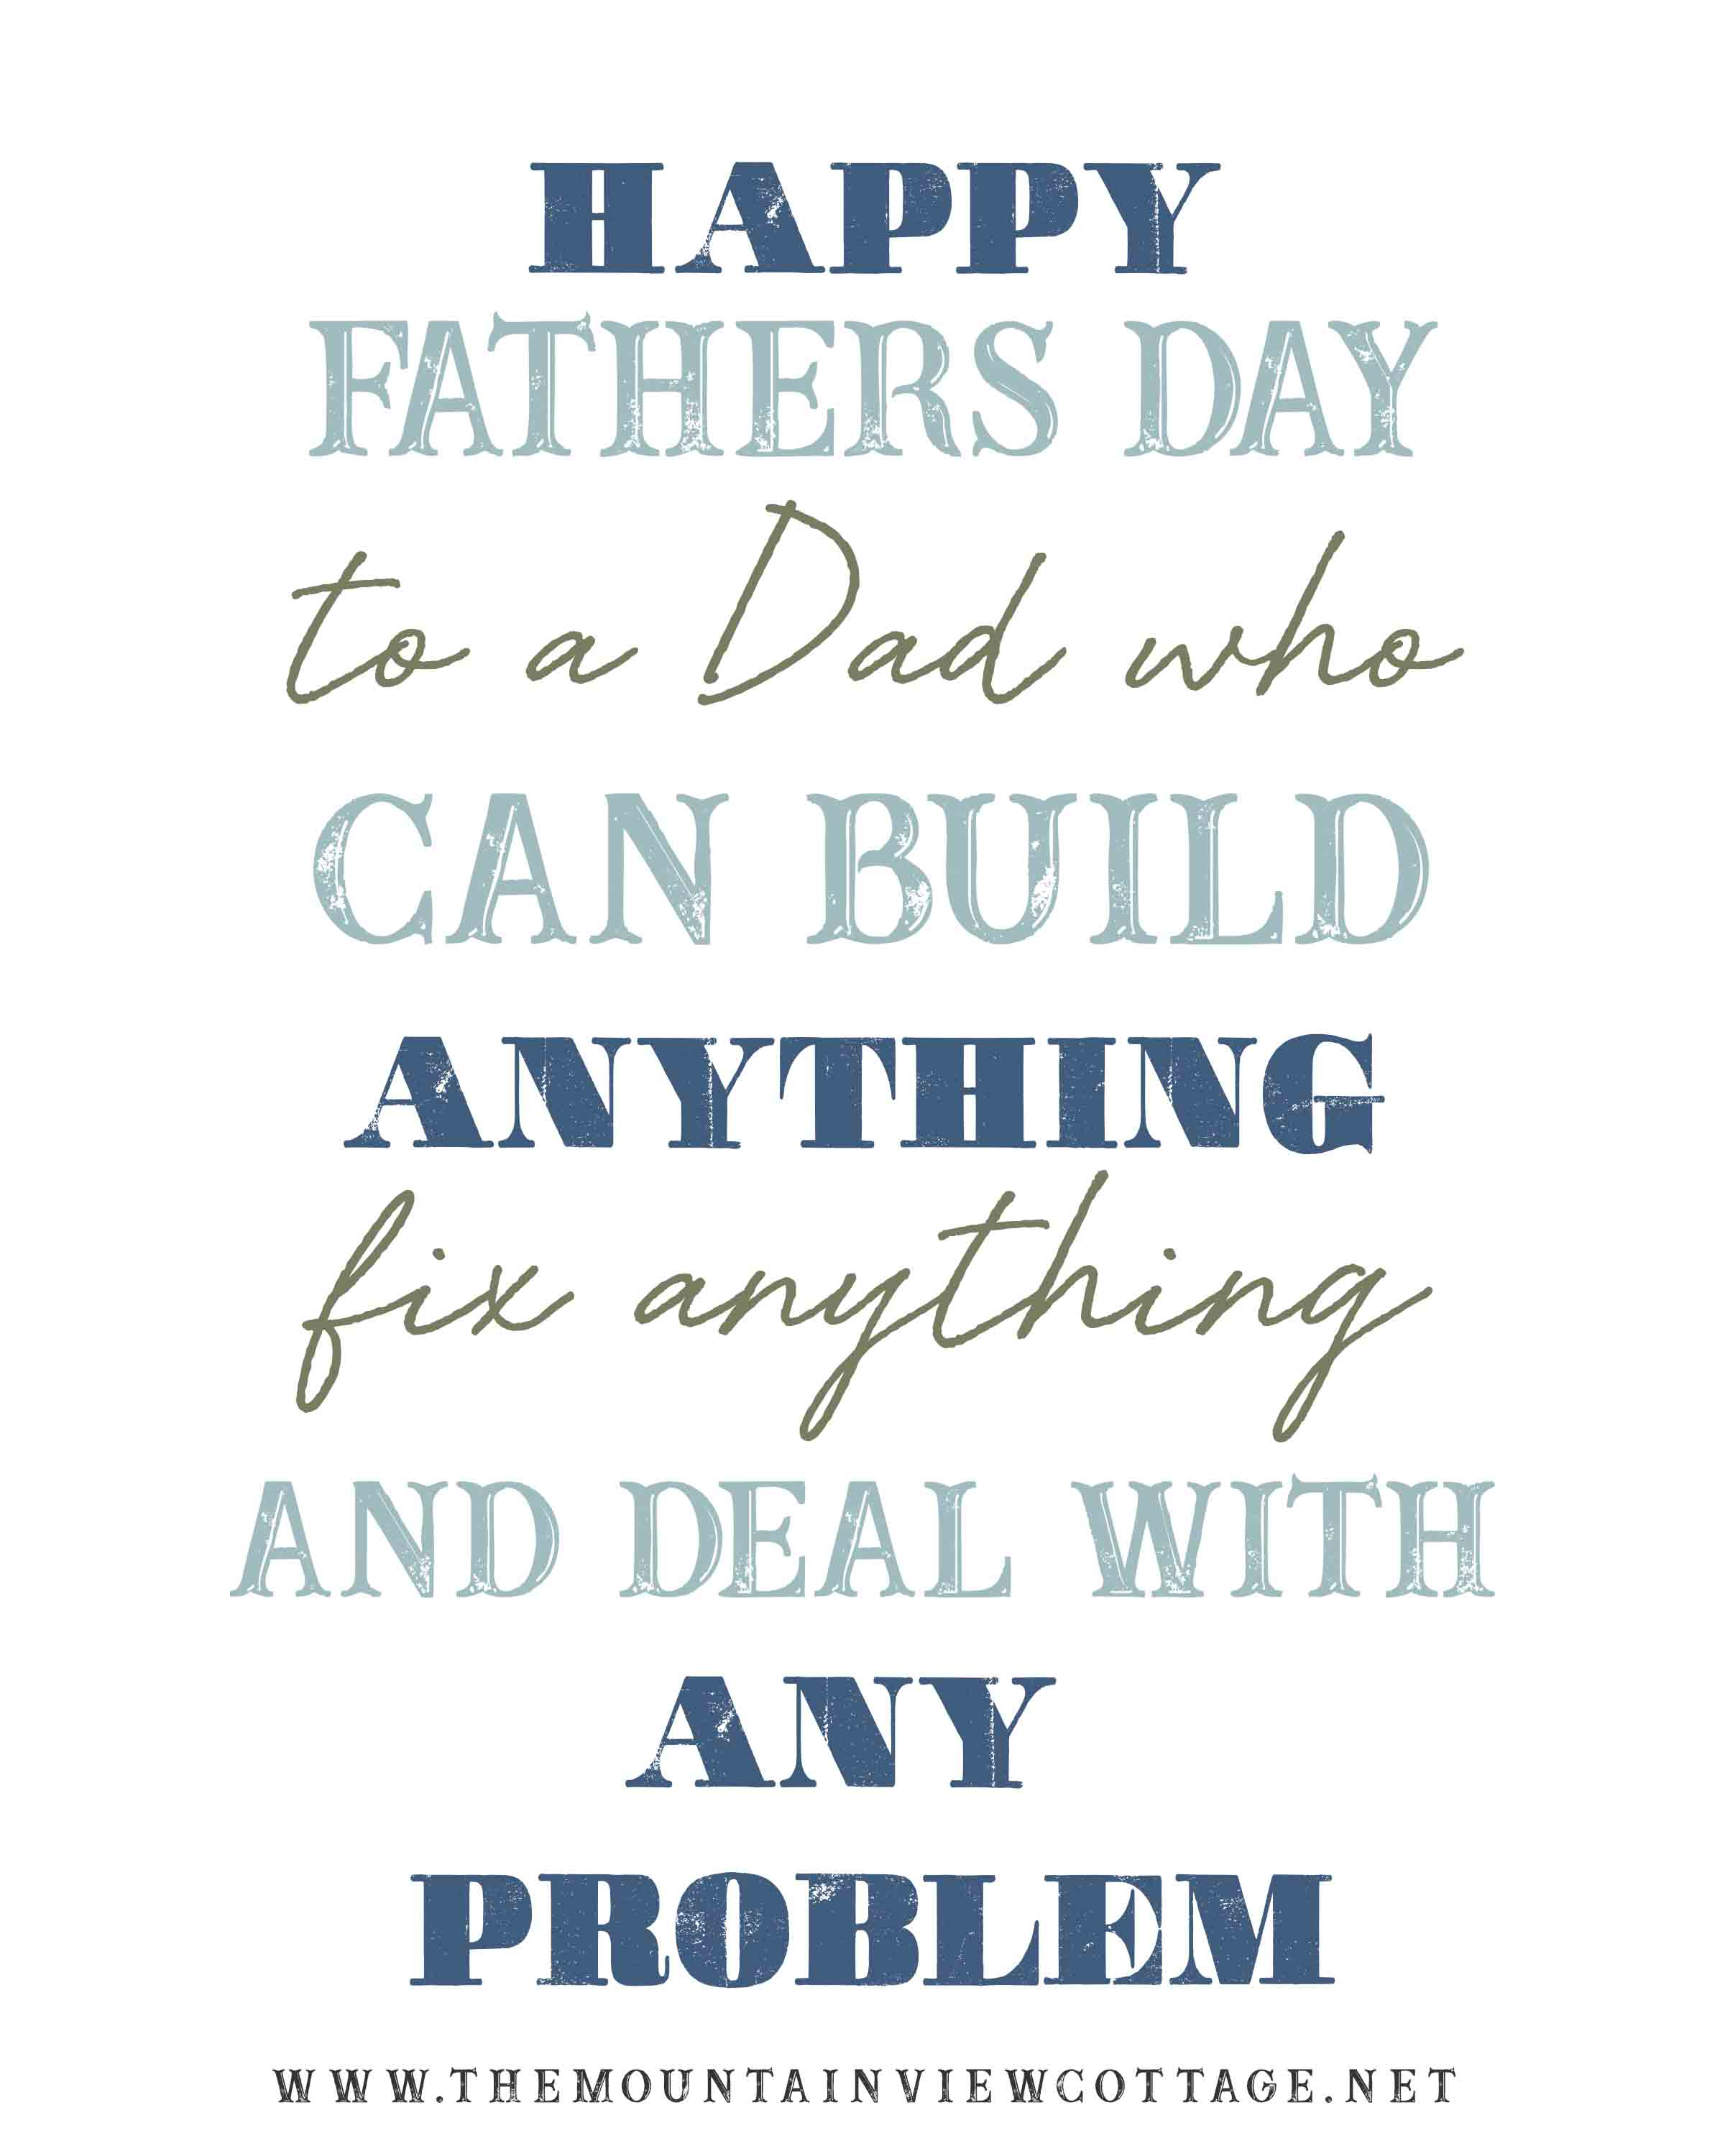 Happy Fathers Day Babe Quotes: 25 Dad Quotes To Inspire {With Images}